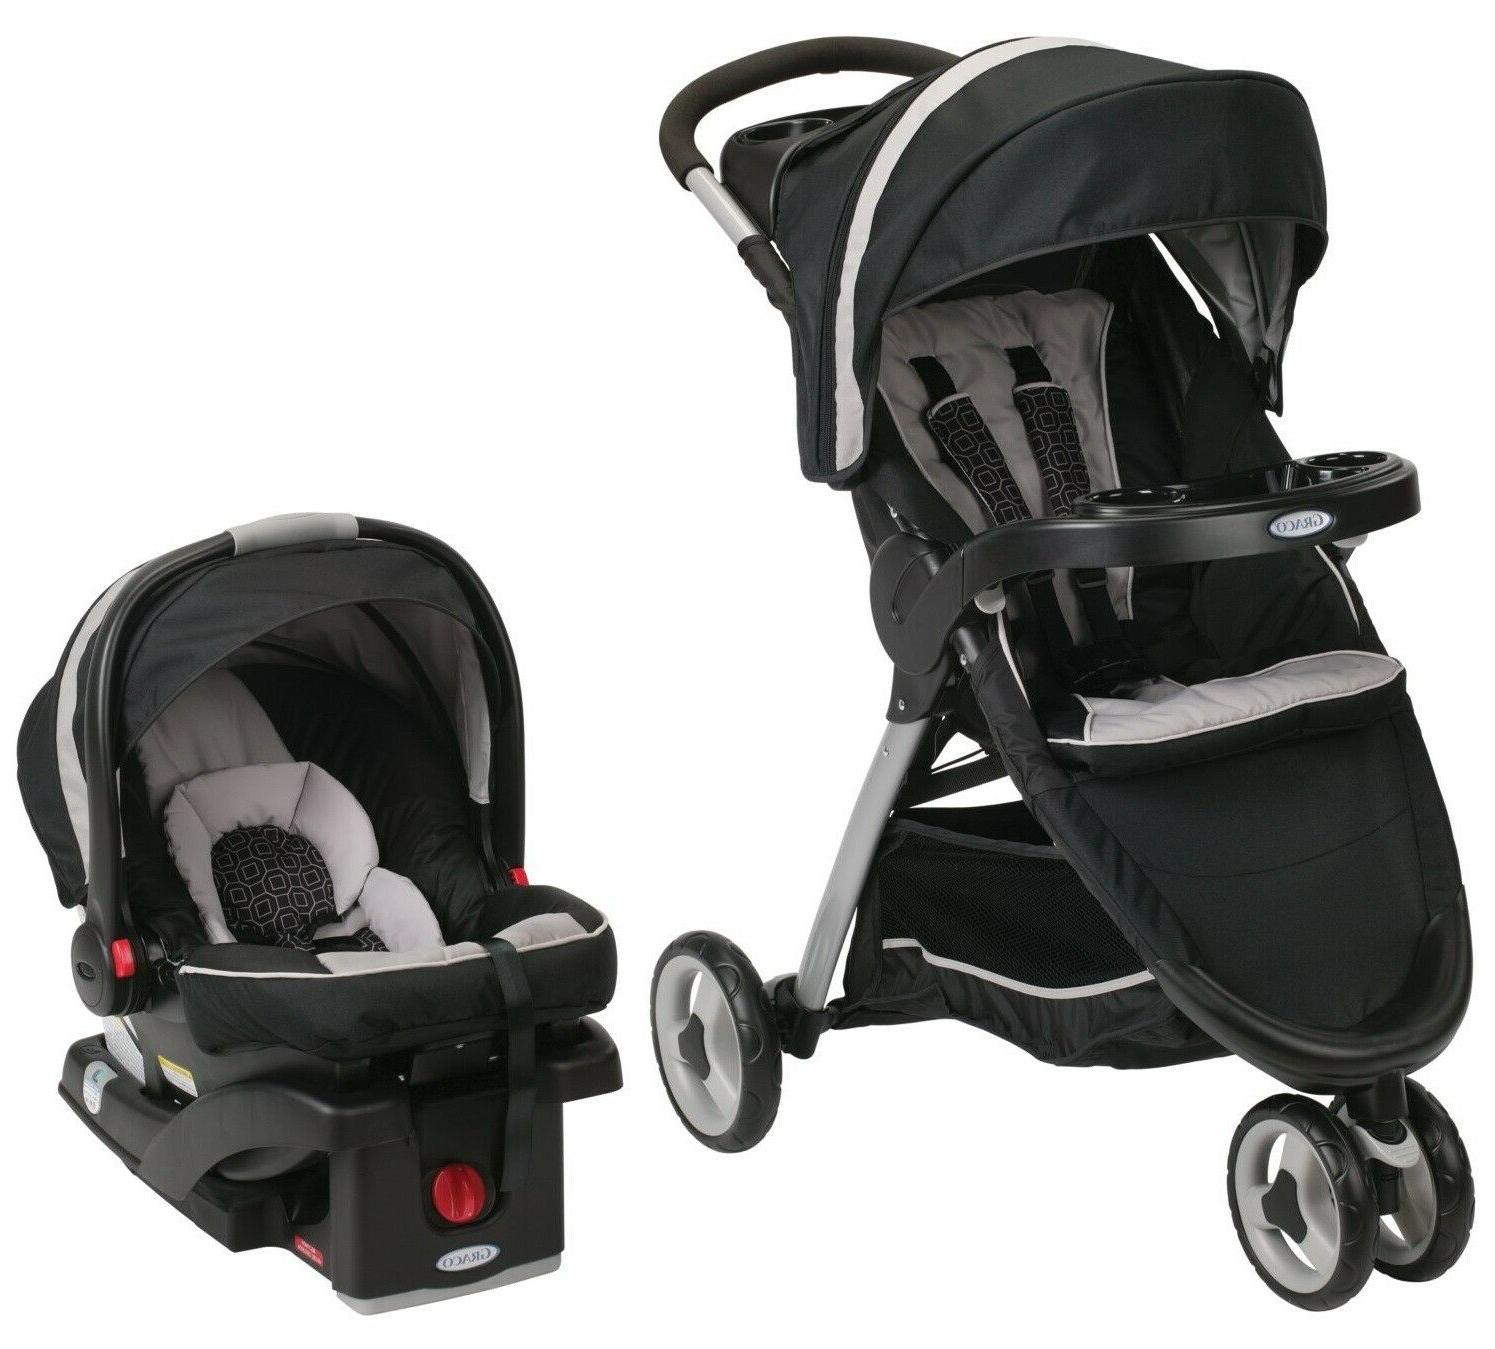 Graco Fastaction Fold Sport Click Connect Travel System, Pie